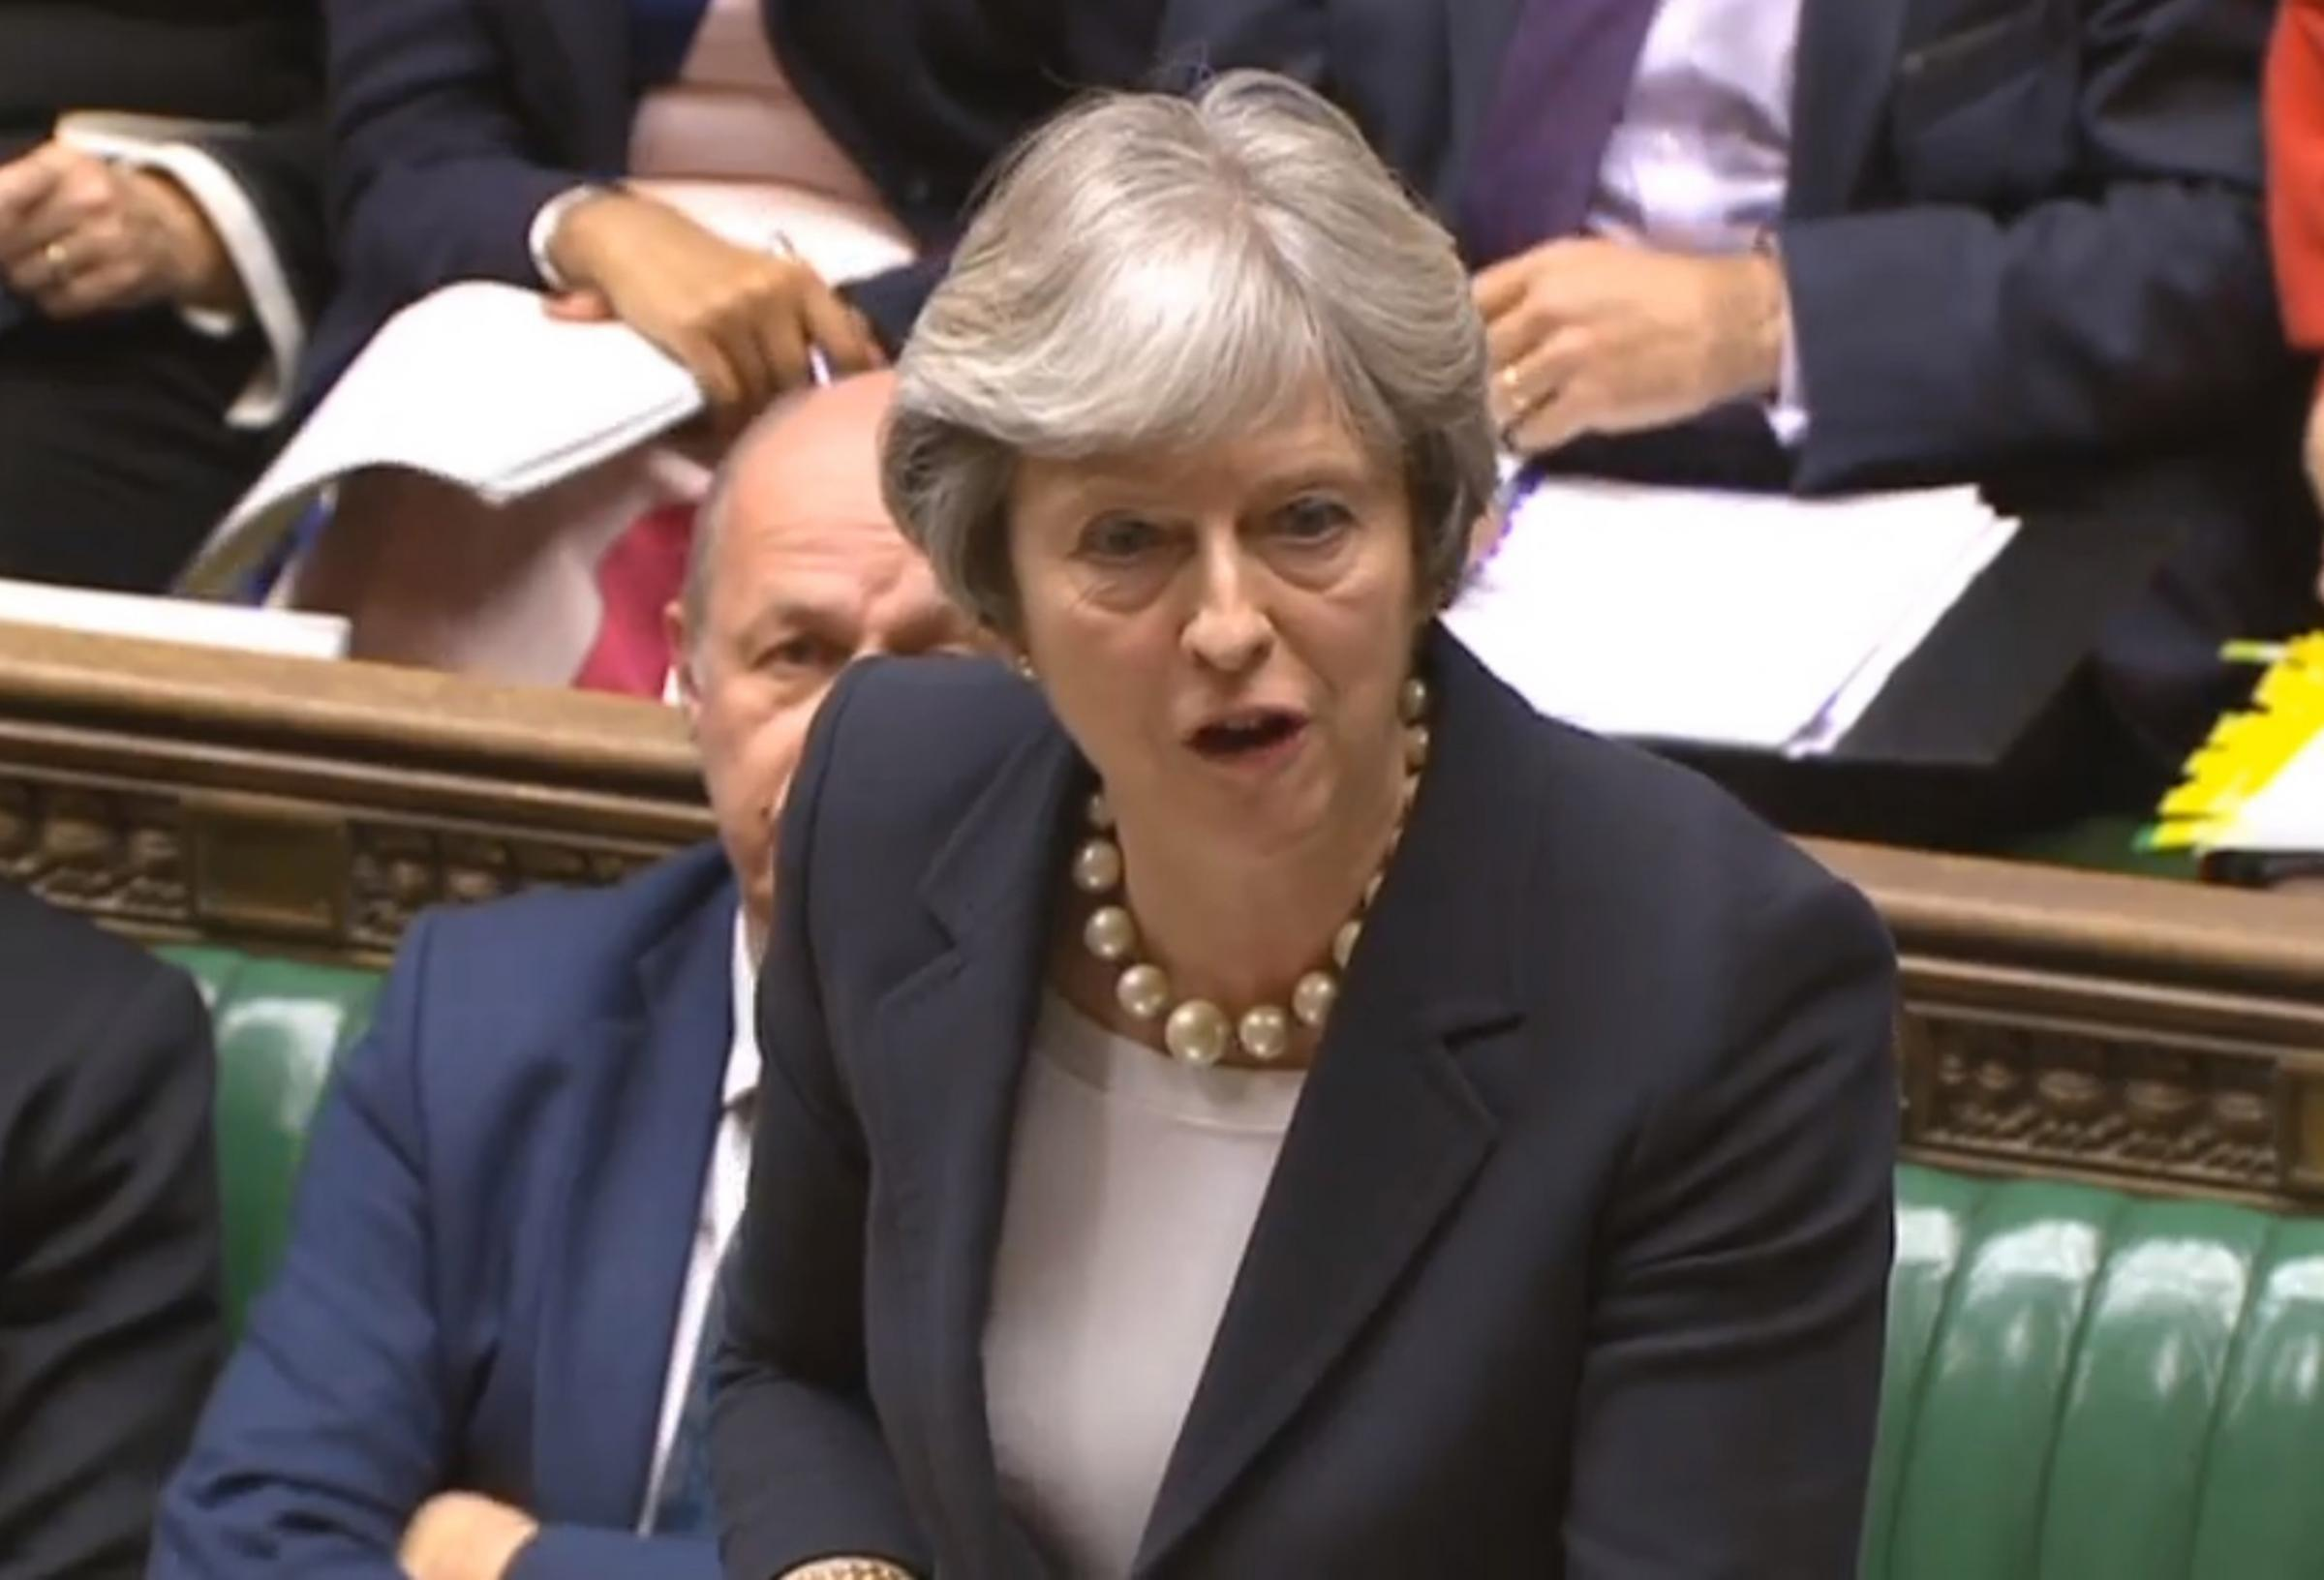 Prime Minister Theresa May responded to the claim